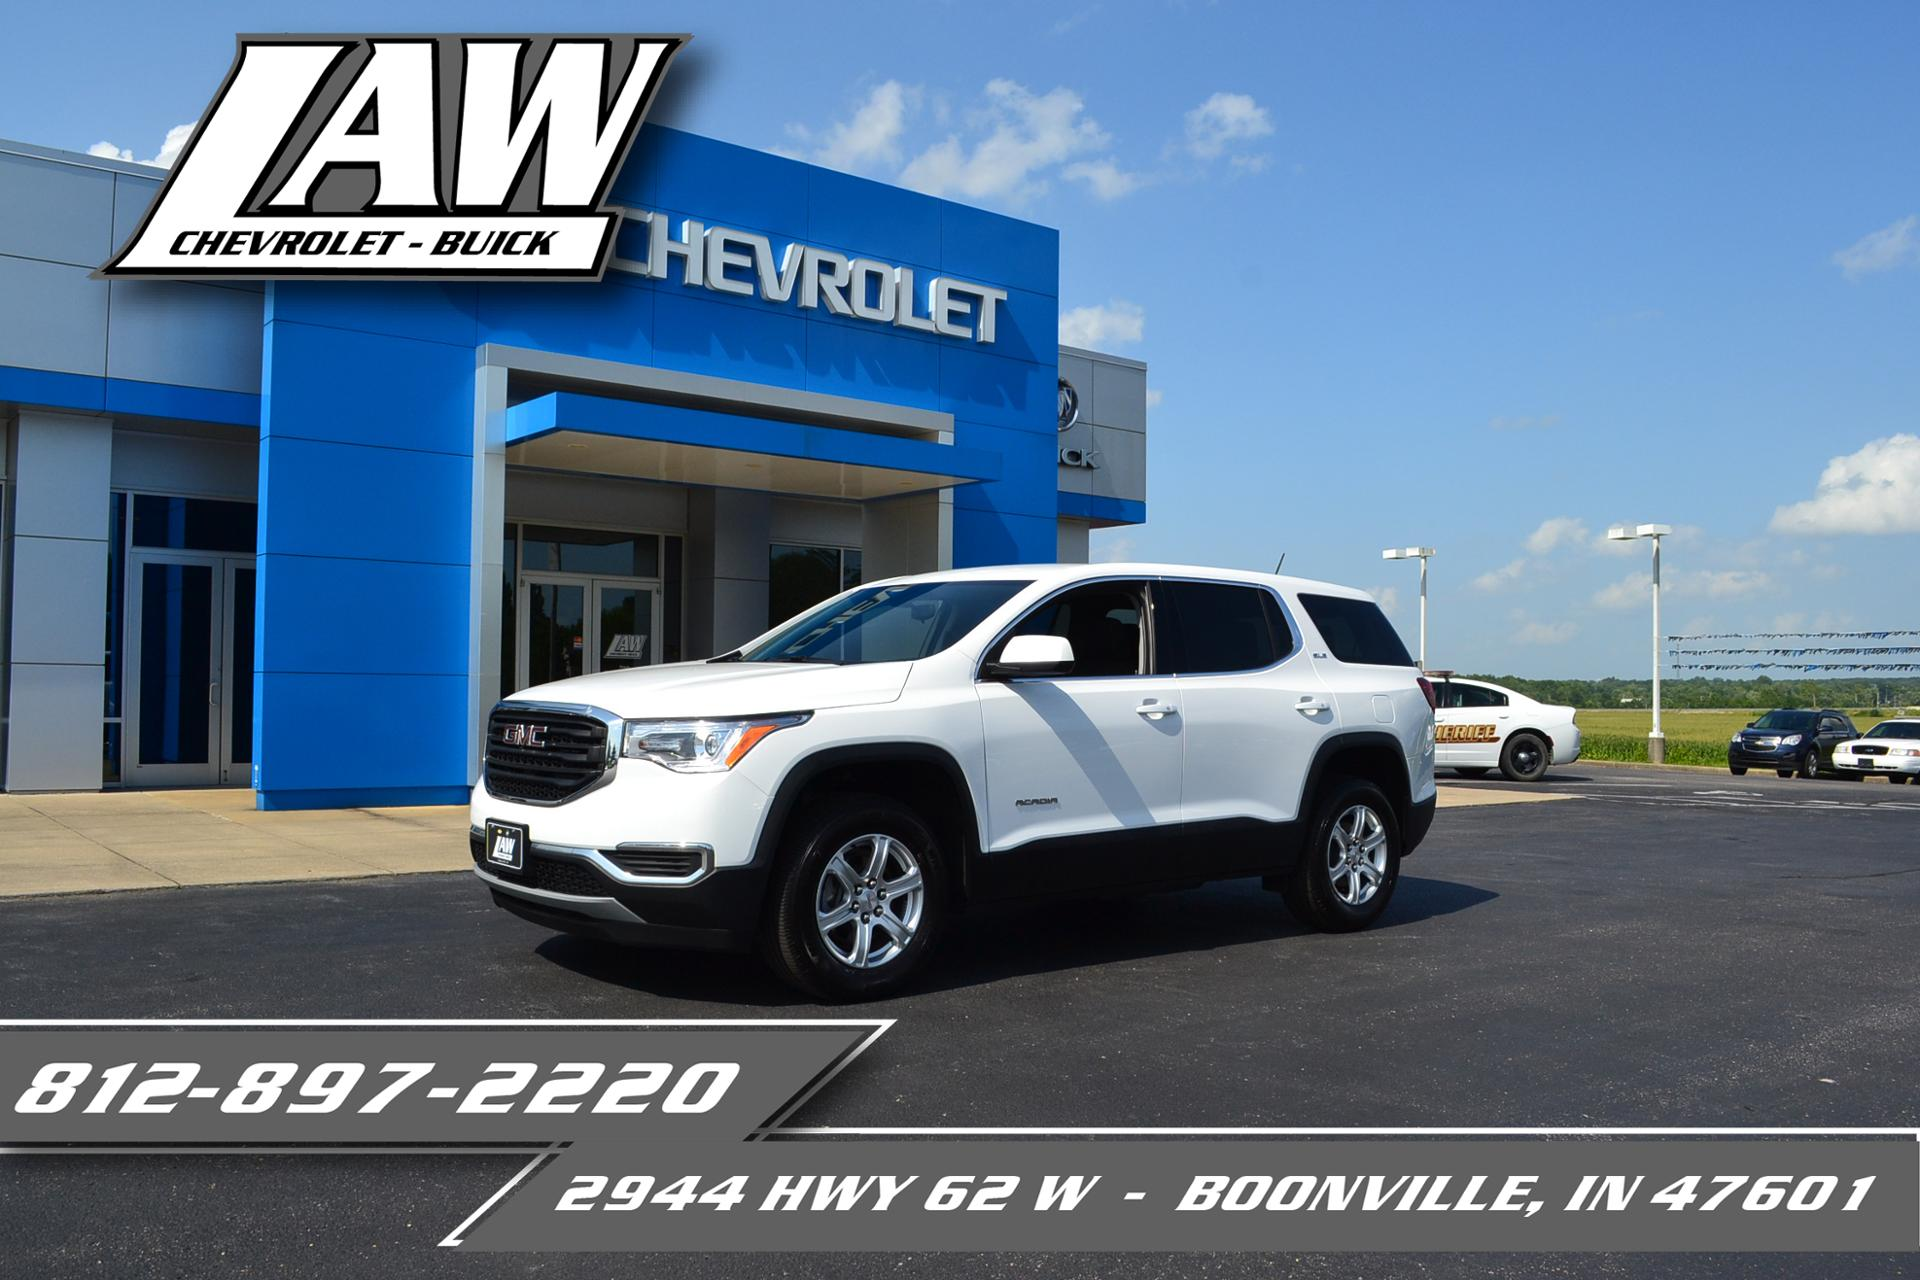 2019 GMC Acadia Vehicle Photo in BOONVILLE, IN 47601-9633